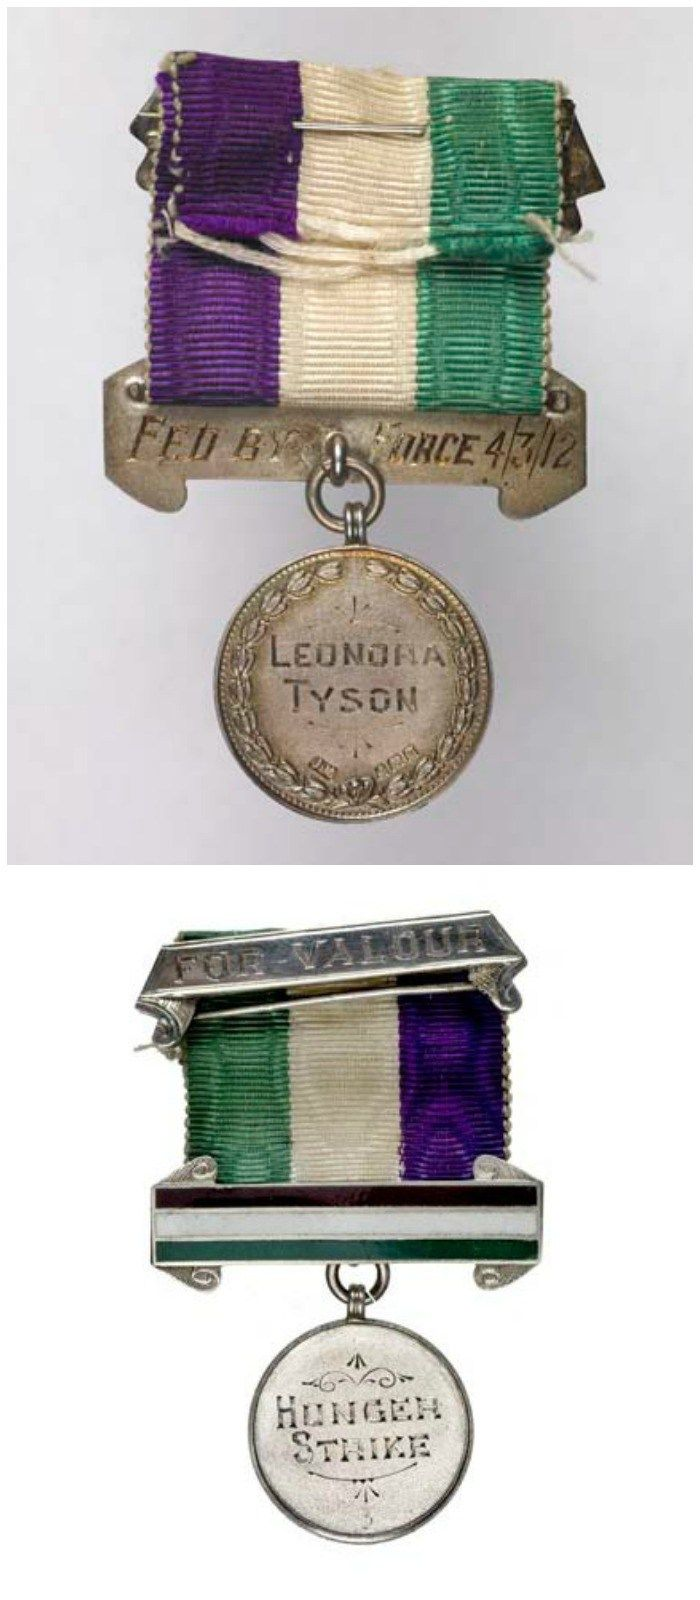 This Medal for Valor was presented to suffragette Leonora Tyson, in honor of a hunger strike for the cause that ended in a force feeding in 1912.